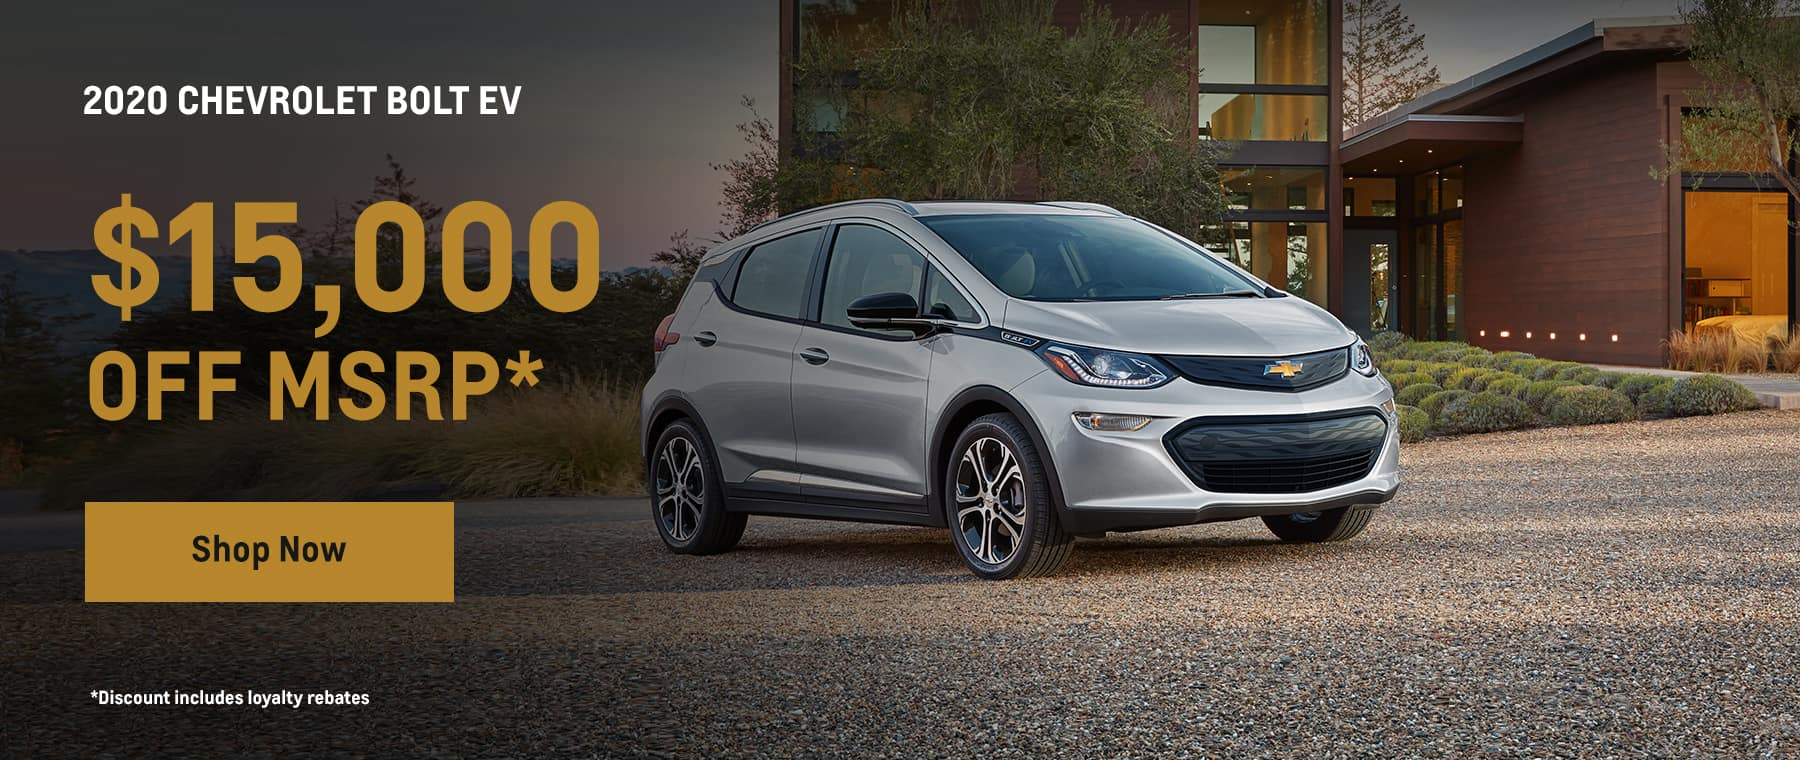 2020 Chevrole bolt - $15,000 off MSRP